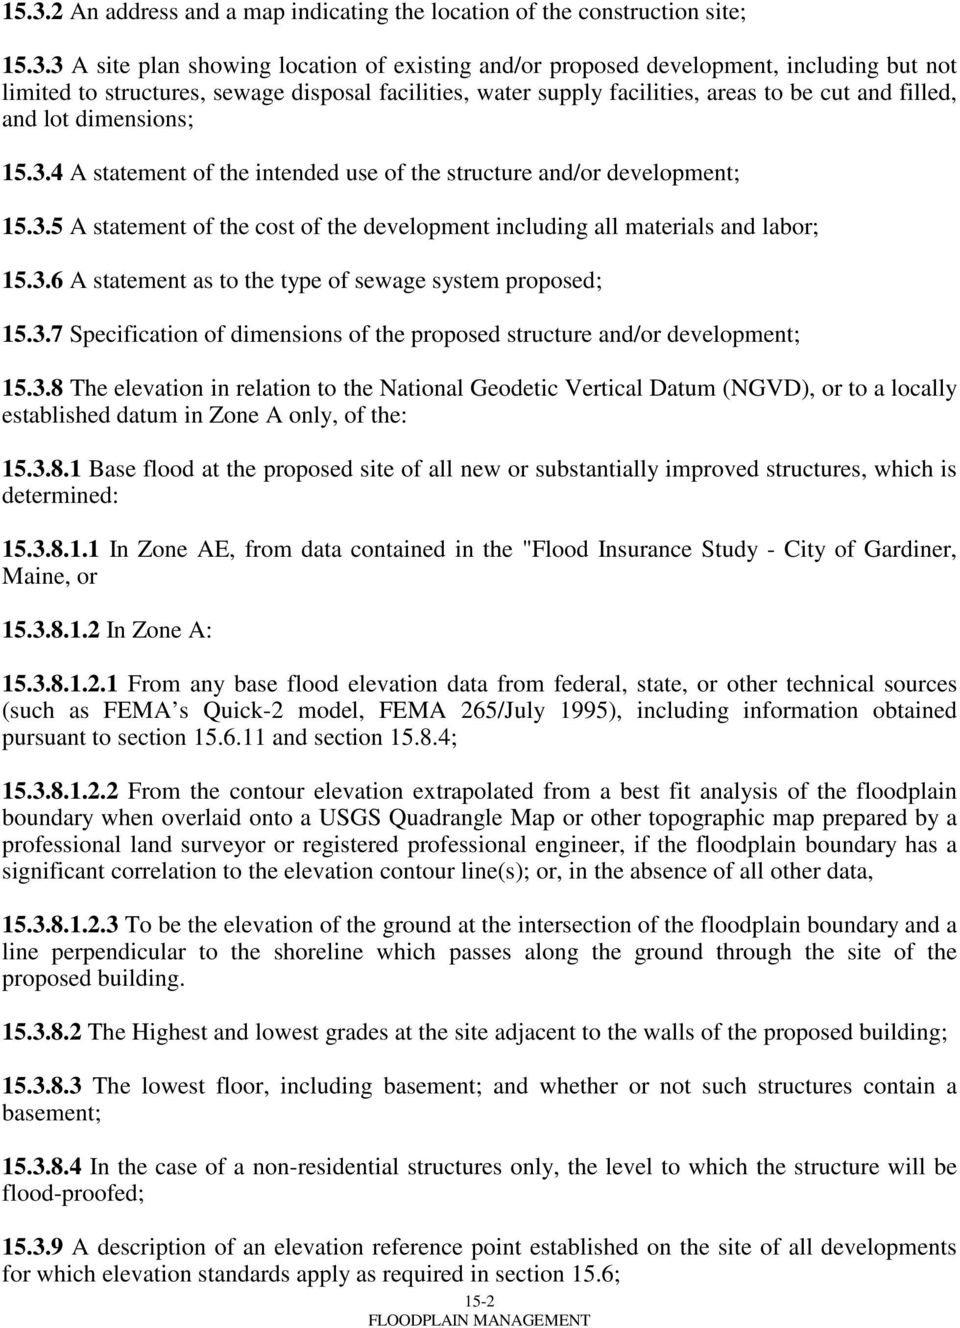 3.6 A statement as to the type of sewage system proposed; 15.3.7 Specification of dimensions of the proposed structure and/or development; 15.3.8 The elevation in relation to the National Geodetic Vertical Datum (NGVD), or to a locally established datum in Zone A only, of the: 15.